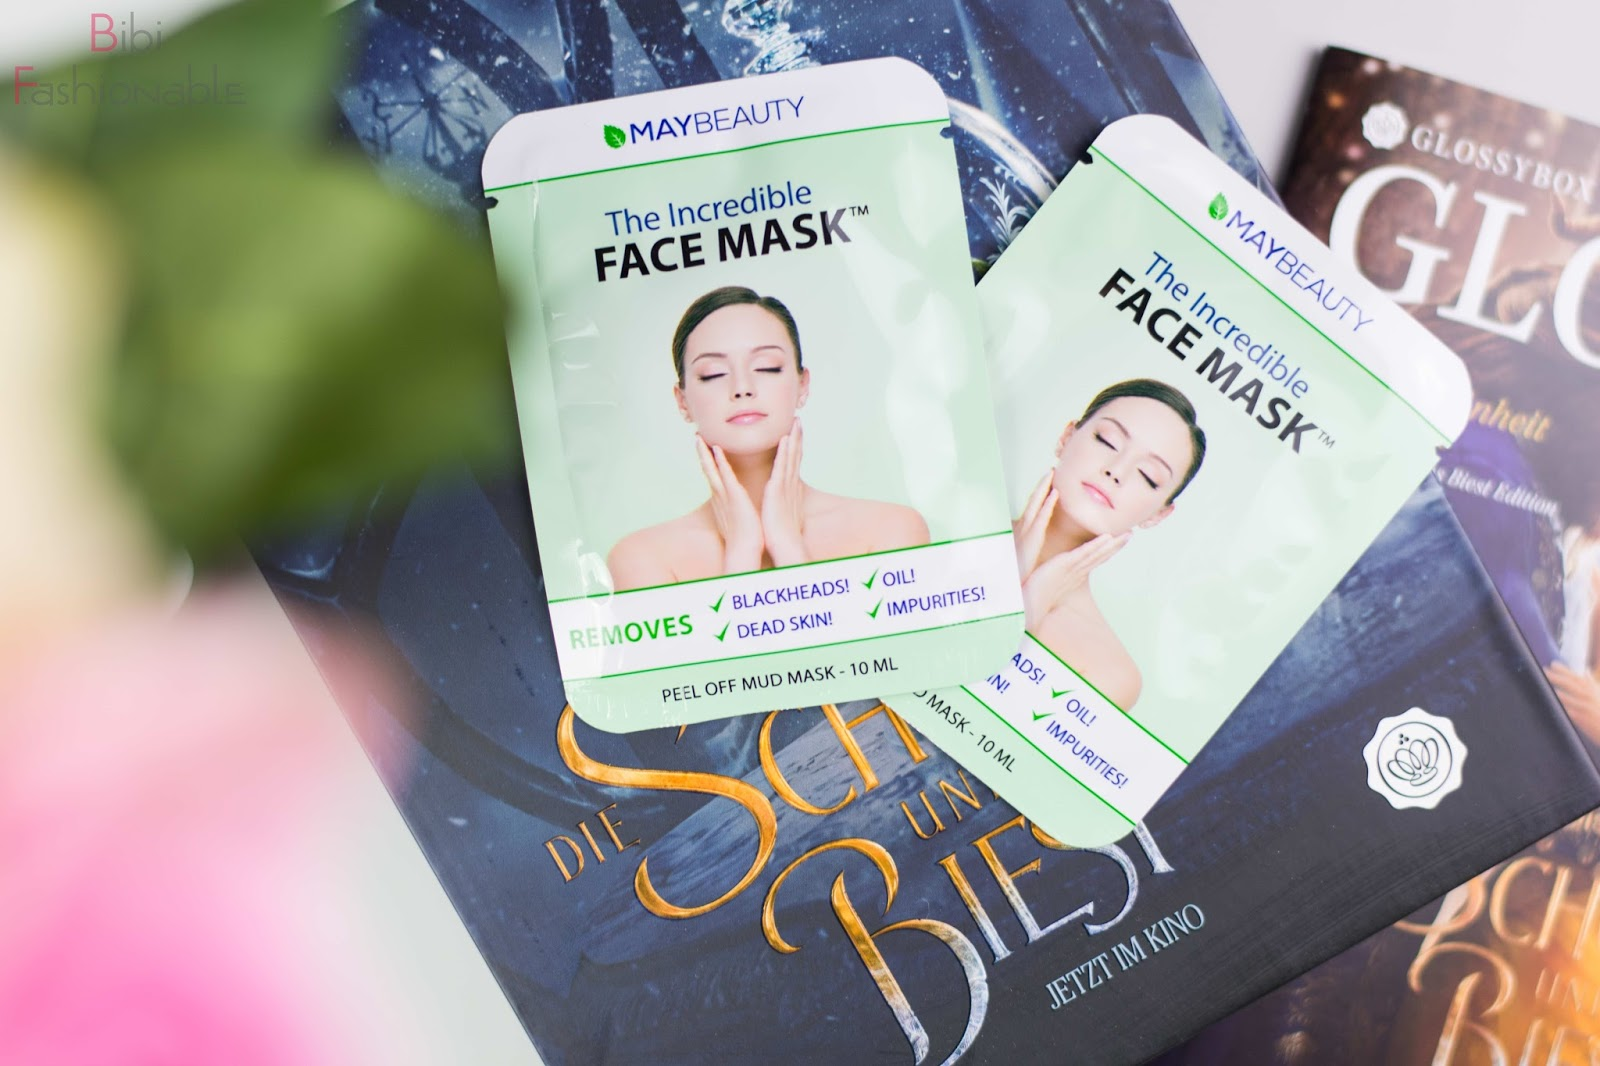 Unboxing Glossybox die Schöne und das Biest MayBeauty The Incredible Face Mask